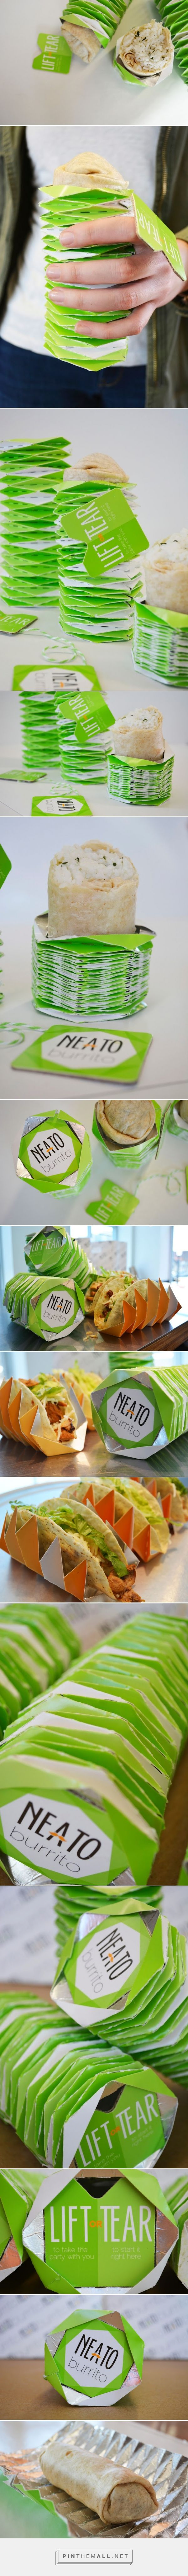 Neato #Burrito #concept #packaging designed by Kelsey Byrd, Haley Ellis, Marcus Mrazeck, Elizabeth Sweeney - http://www.packagingoftheworld.com/2015/04/neato-burrito-student-project.html